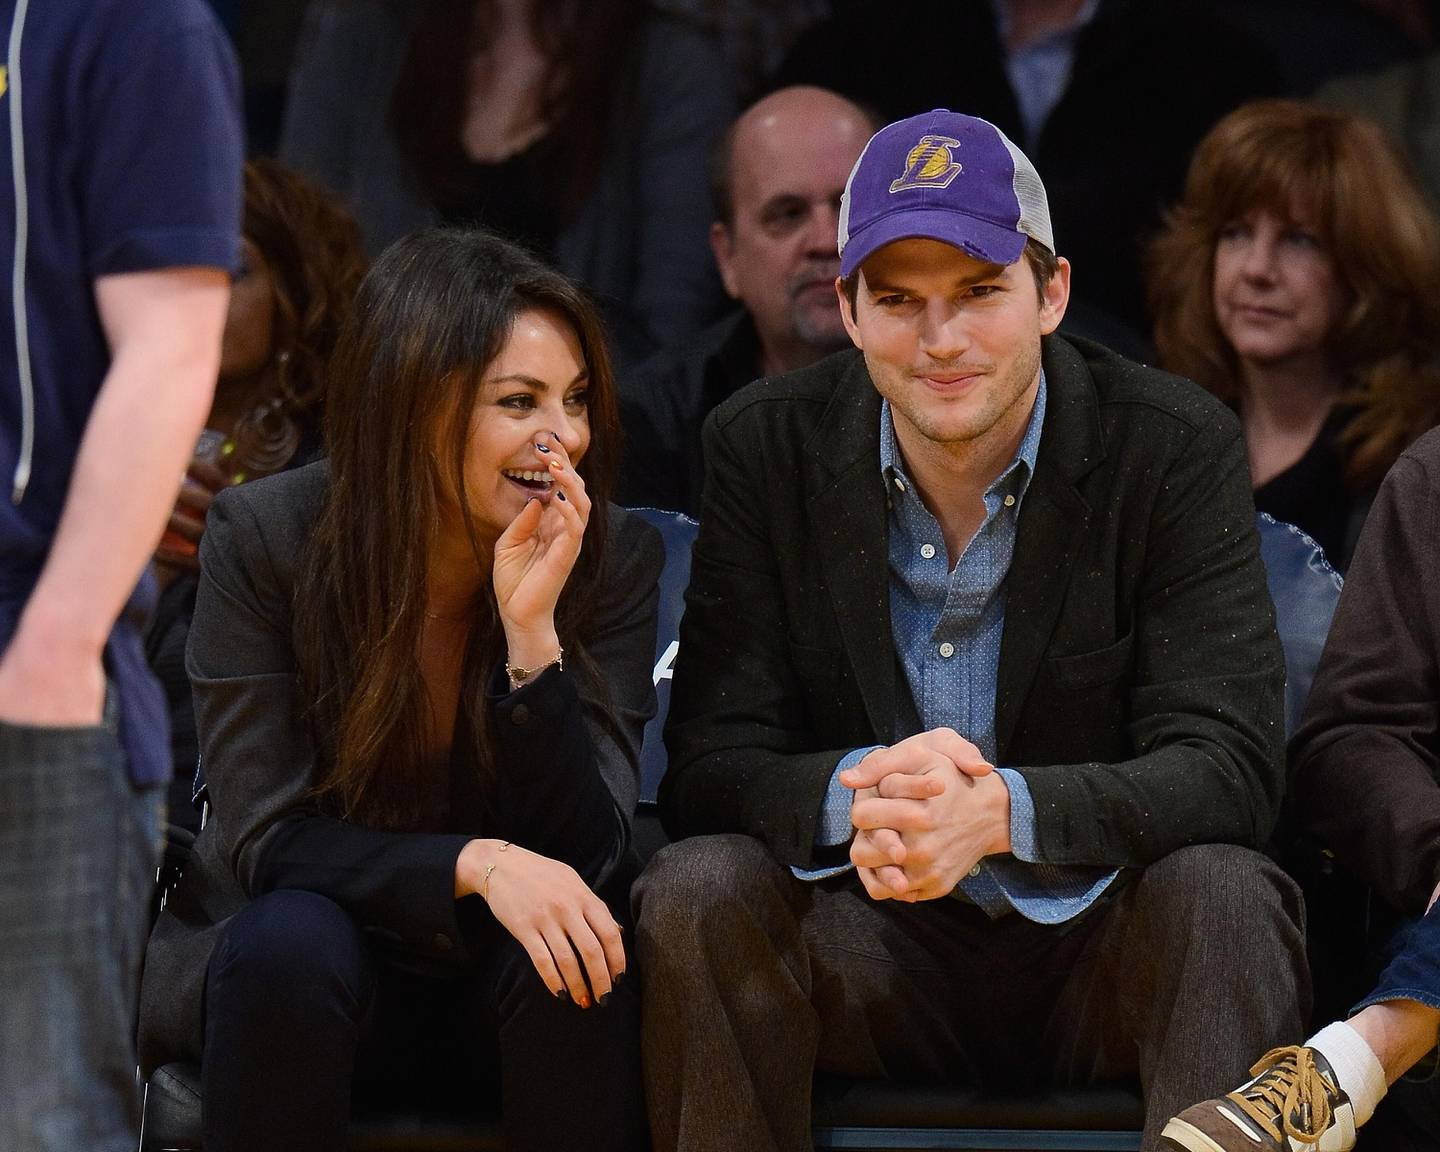 LOS ANGELES, CA - JANUARY 03:  Ashton Kutcher (R) and Mila Kunis attend a basketball game between the Utah Jazz and the Los Angeles Lakers at Staples Center on January 3, 2014 in Los Angeles, California.  (Photo by Noel Vasquez/Getty Images)